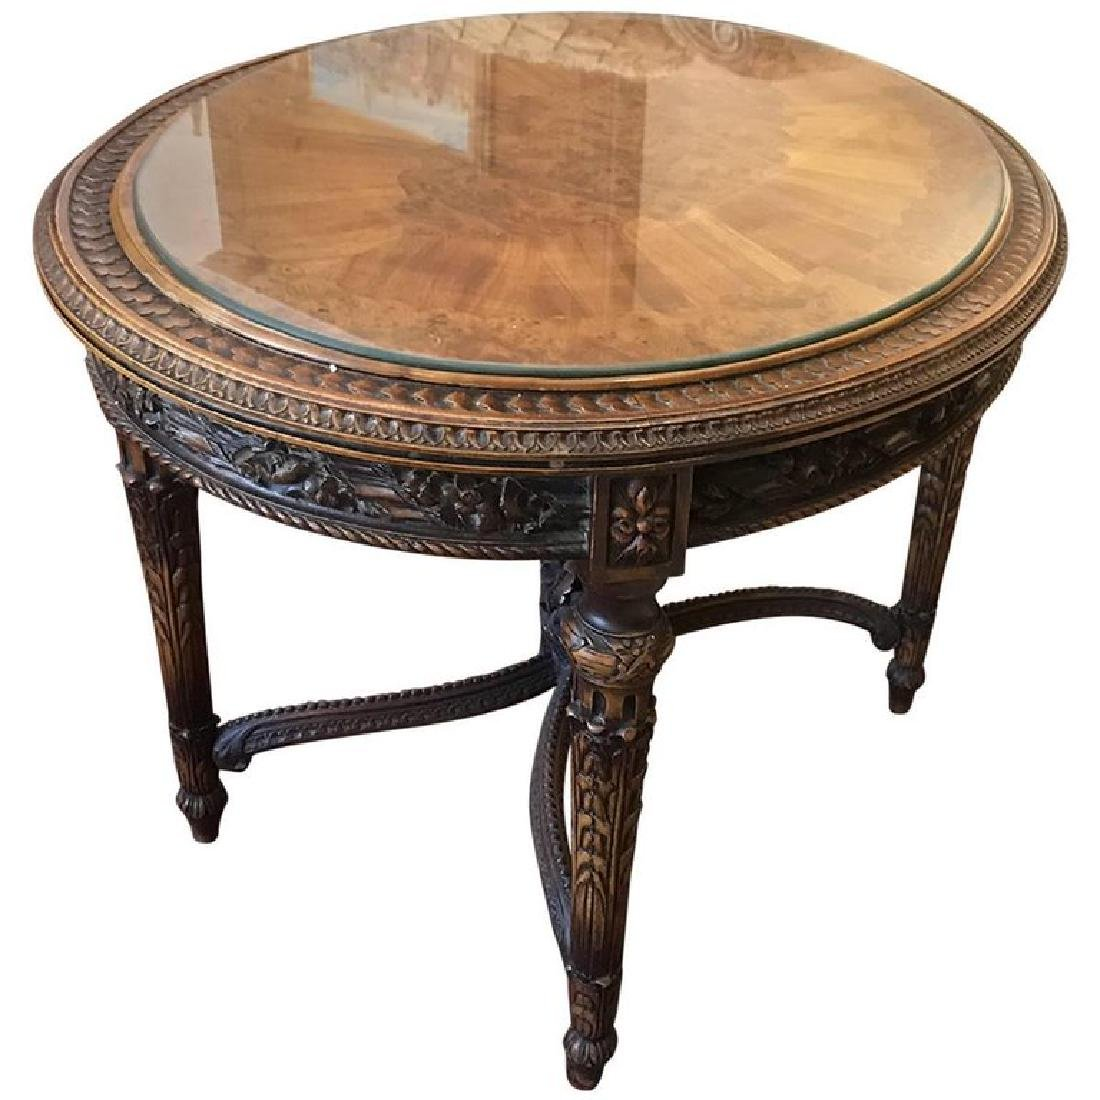 SCHOLLE FURNITURE CO. Neoclassical Style Carved and